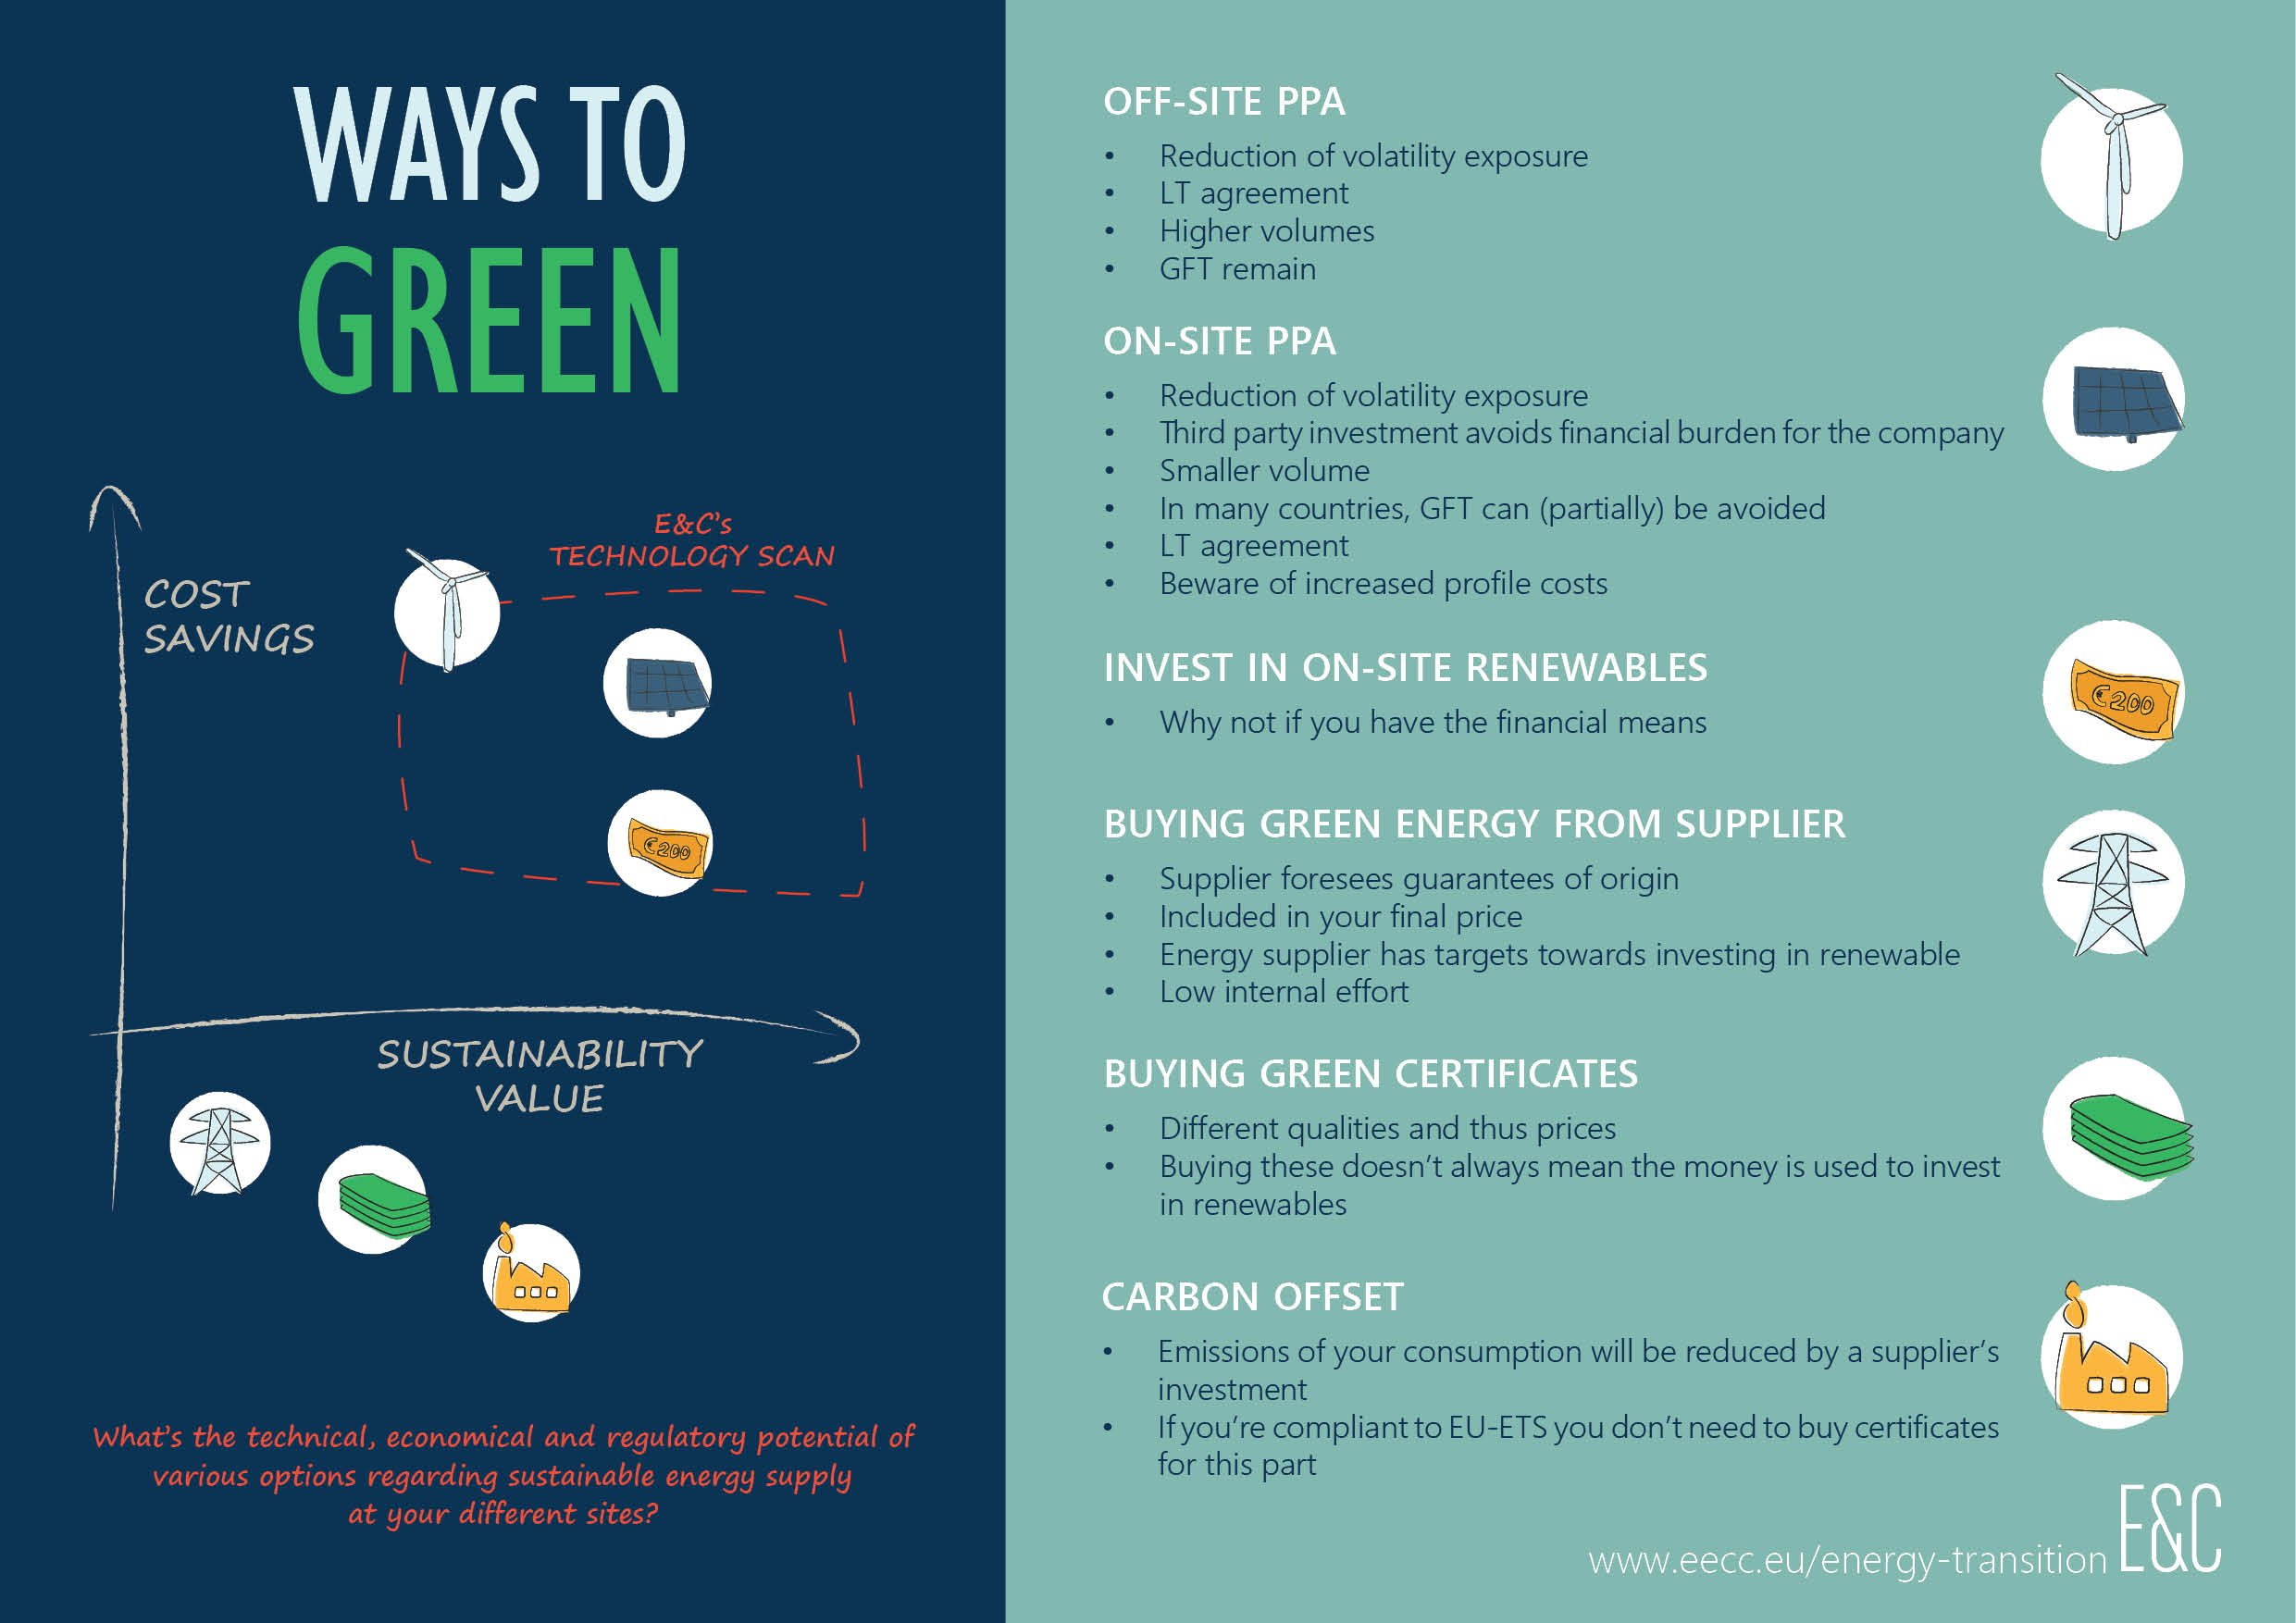 ways to green infographic